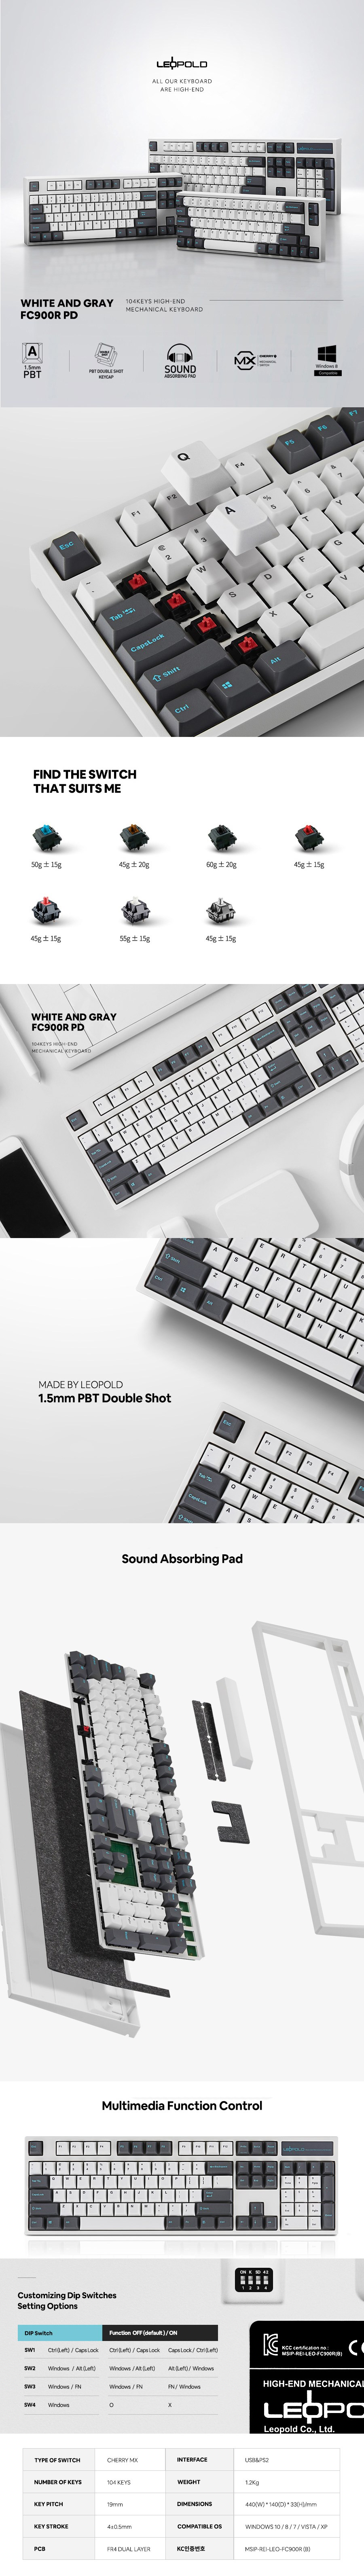 Leopold FC900R PD Grey/White Two-Tone Mechanical Keyboard - Cherry MX Red - Overview 1